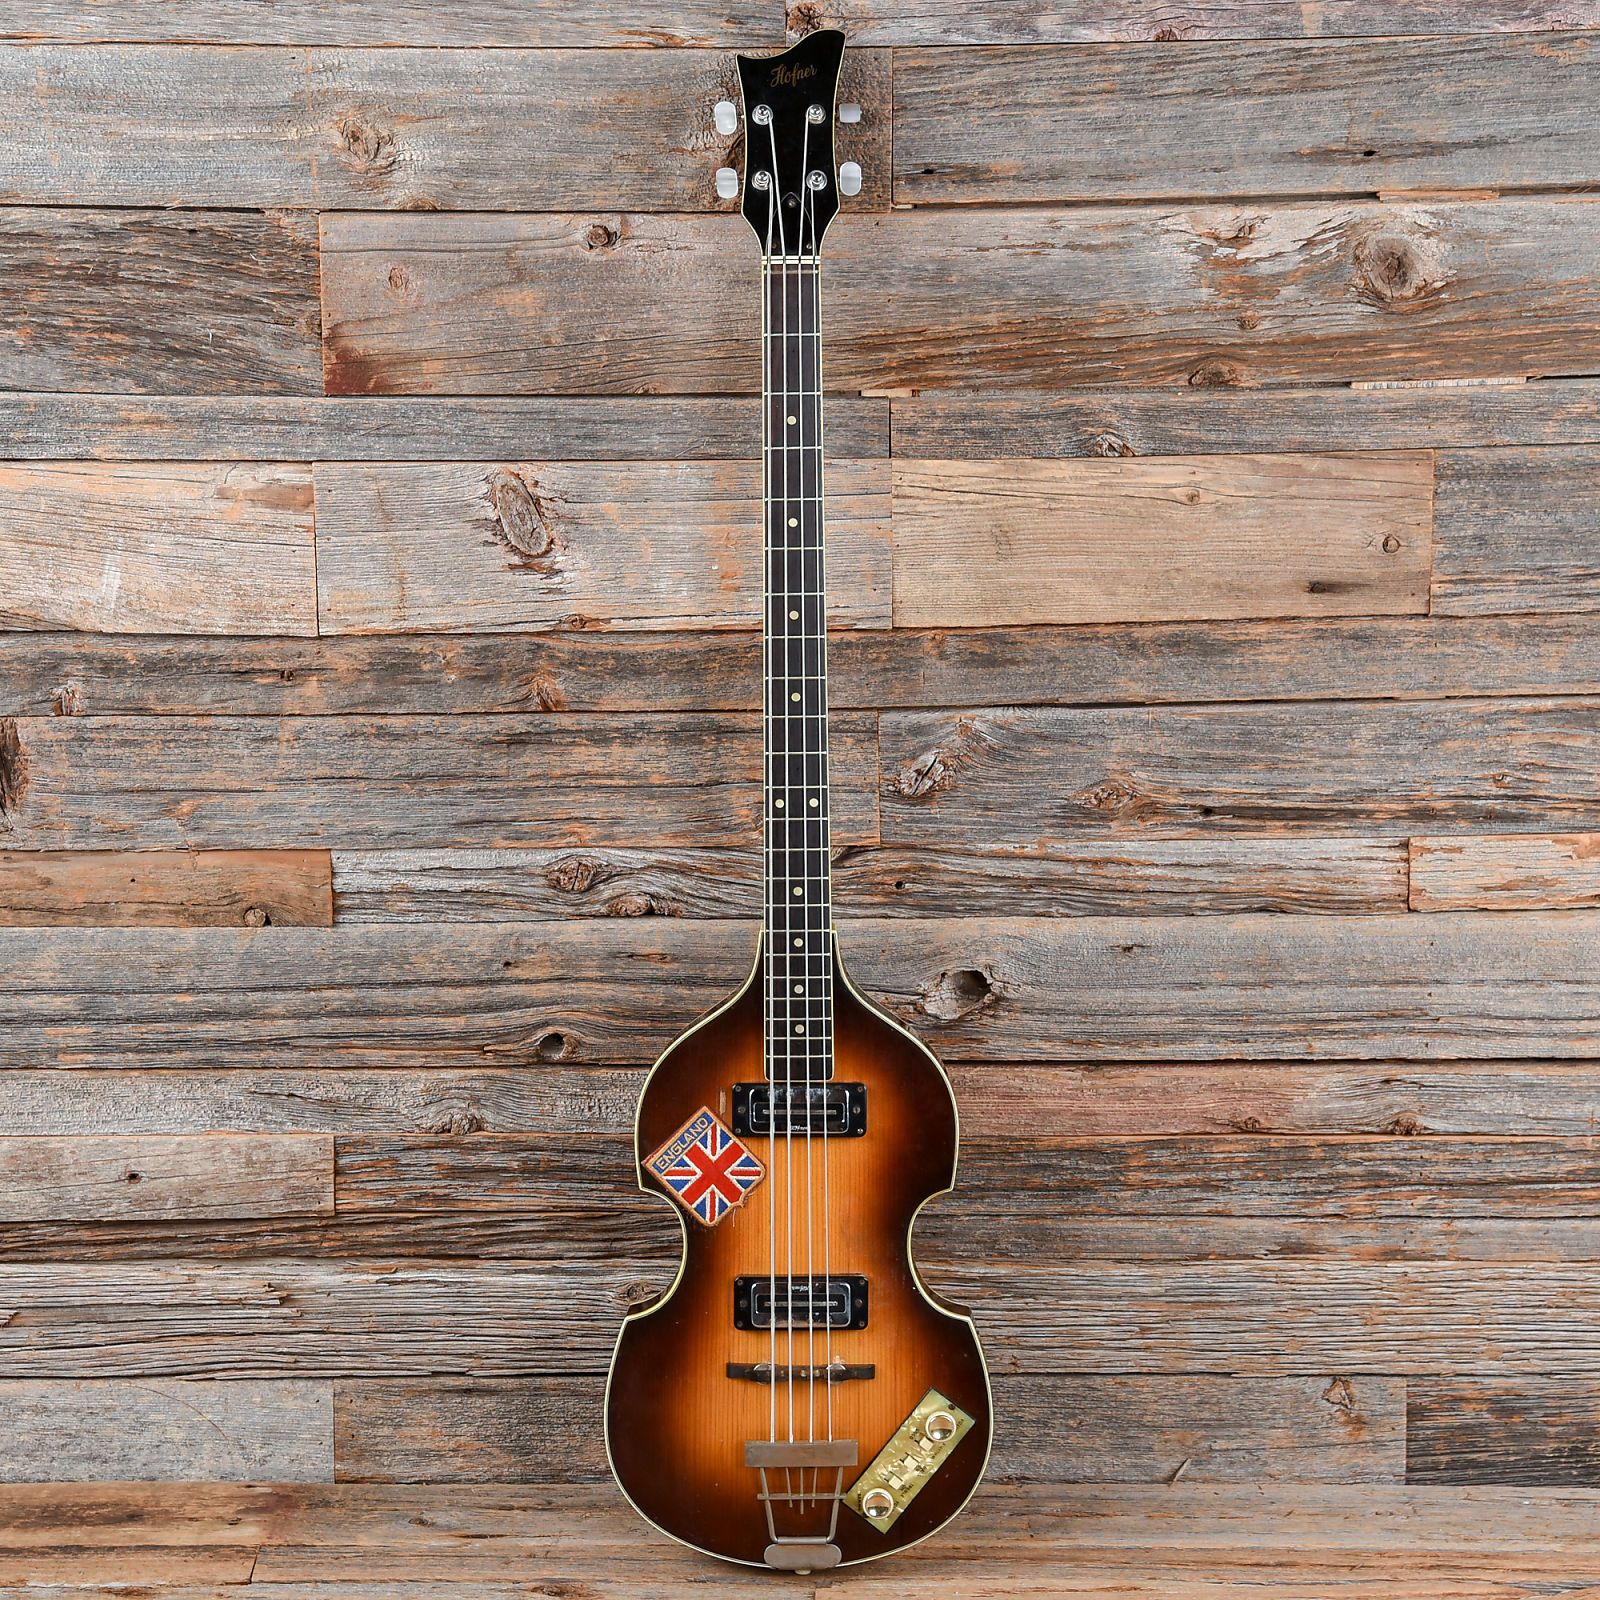 Hofner 500 1 Violin Bass Sunburst 1960s Used Wiring Diagram